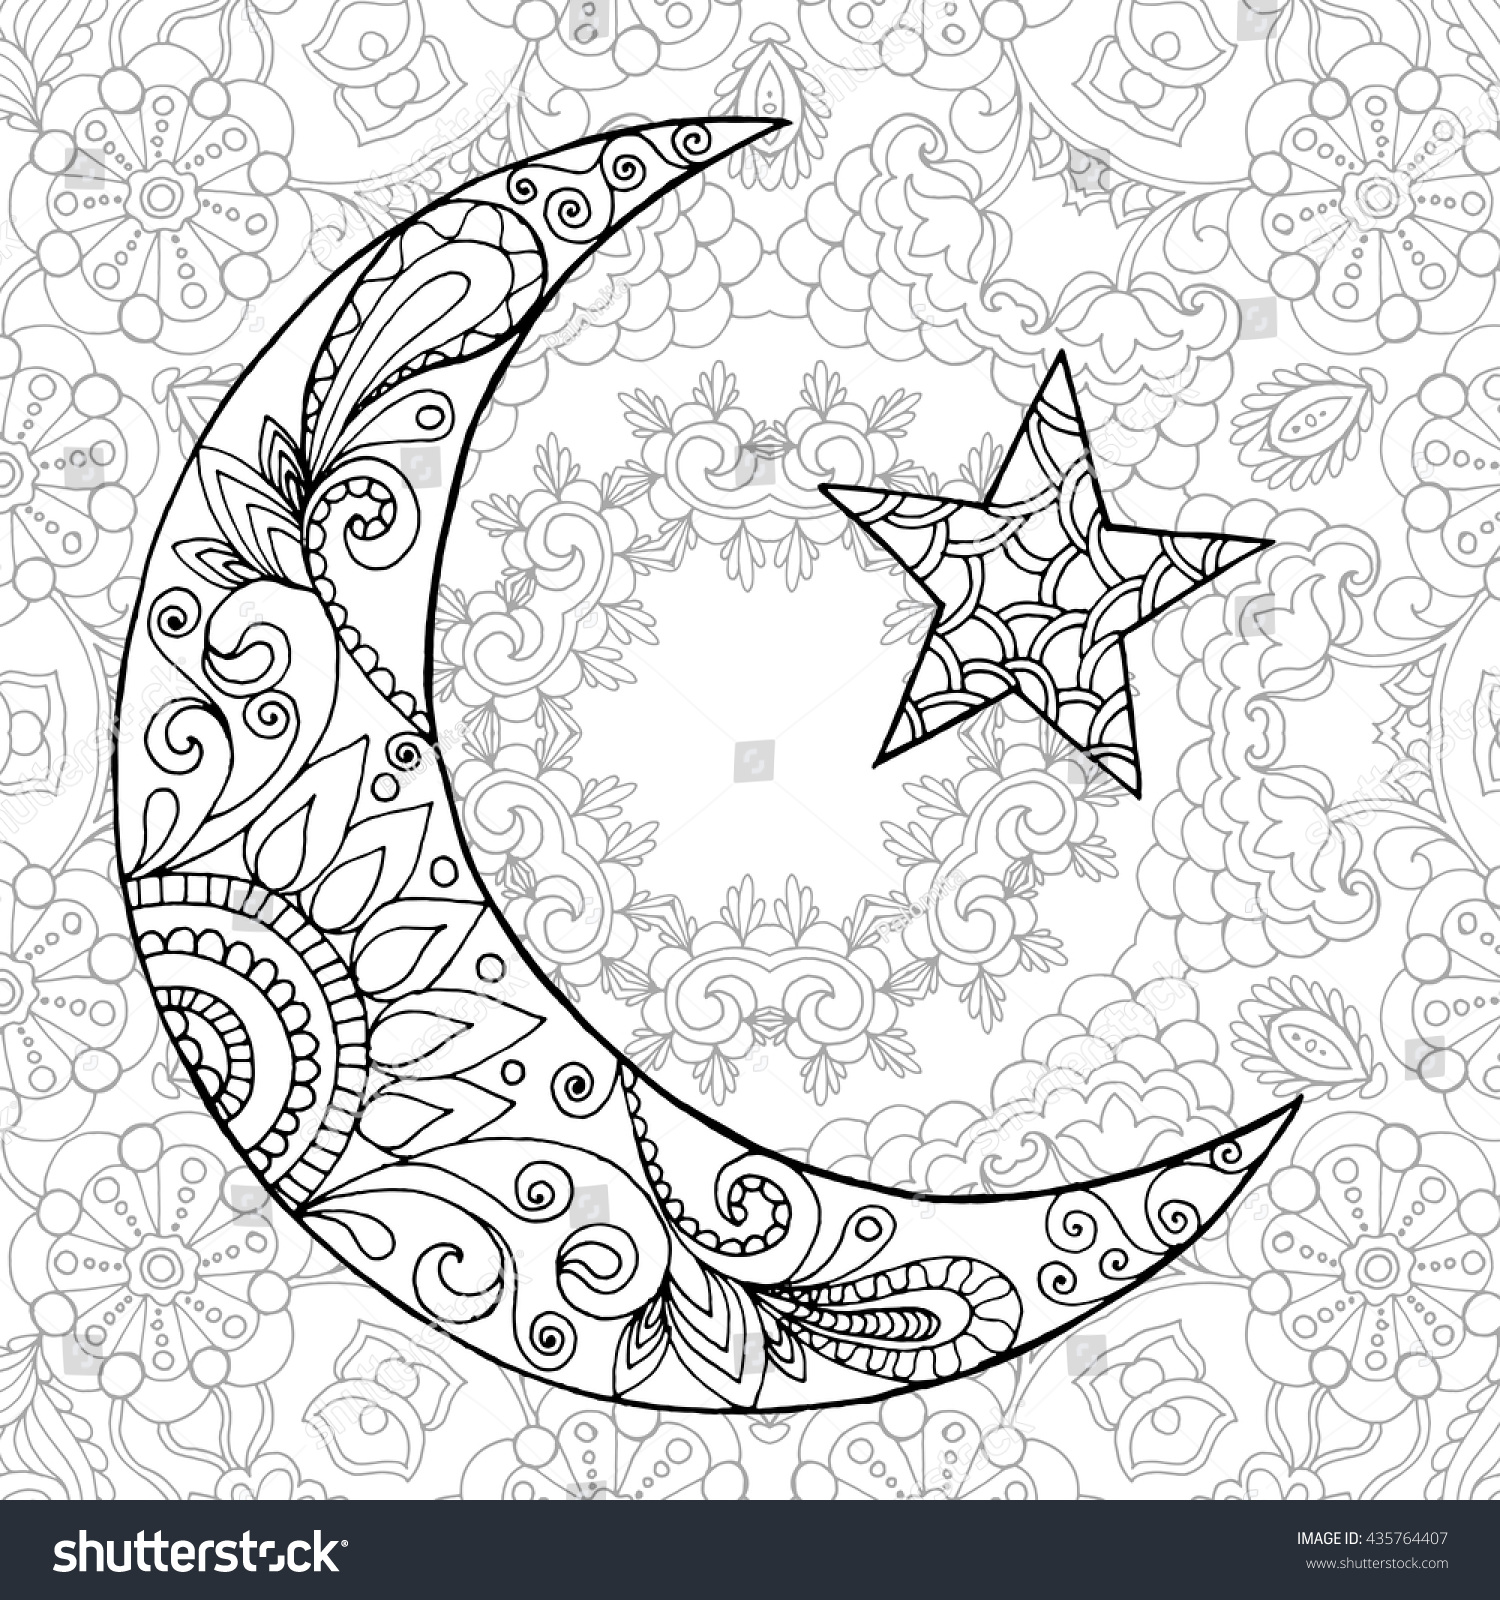 Ramadan kareem half moon greeting design stock for Half moon coloring pages